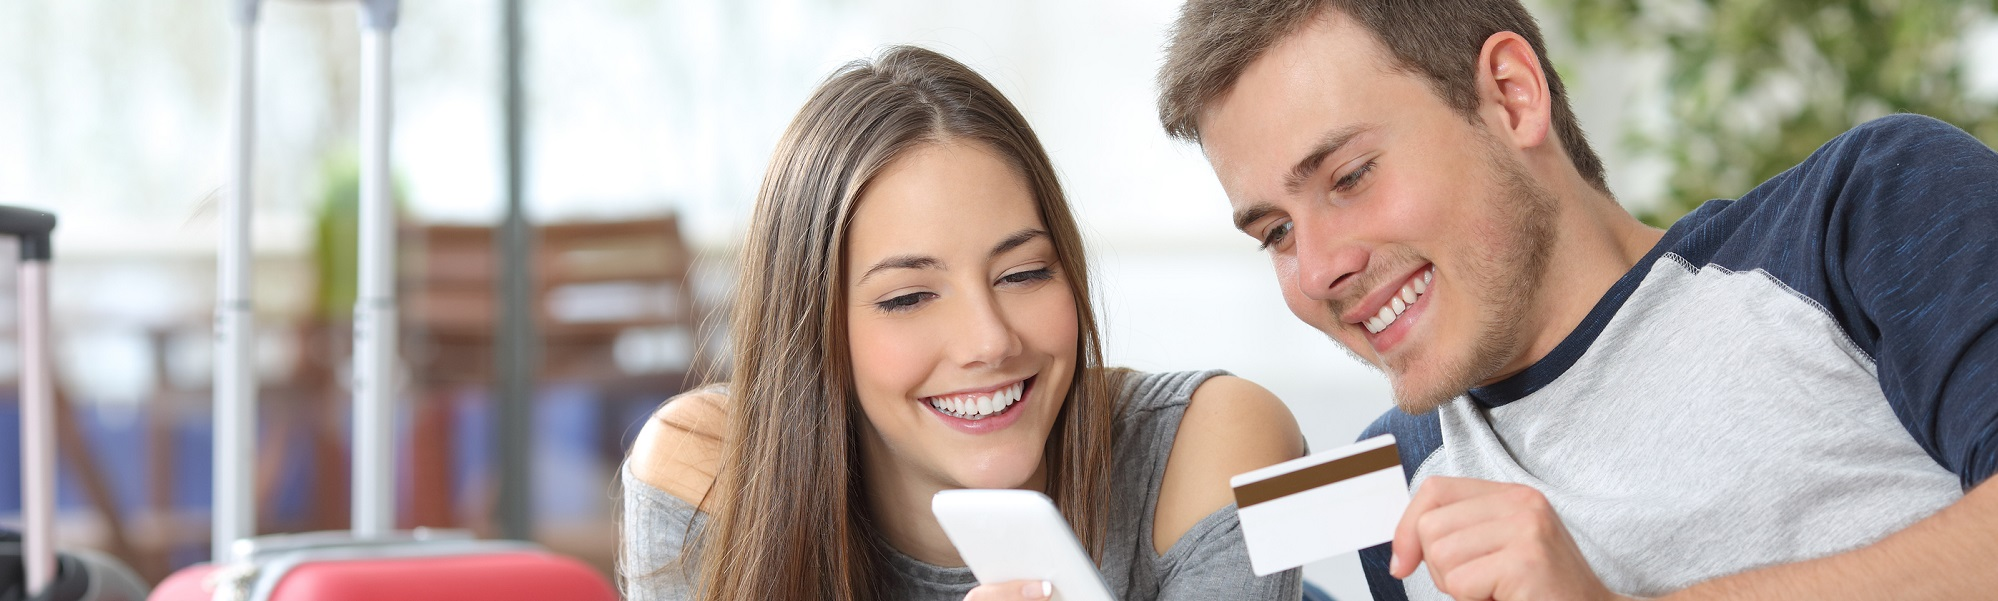 Couple holding phone and card